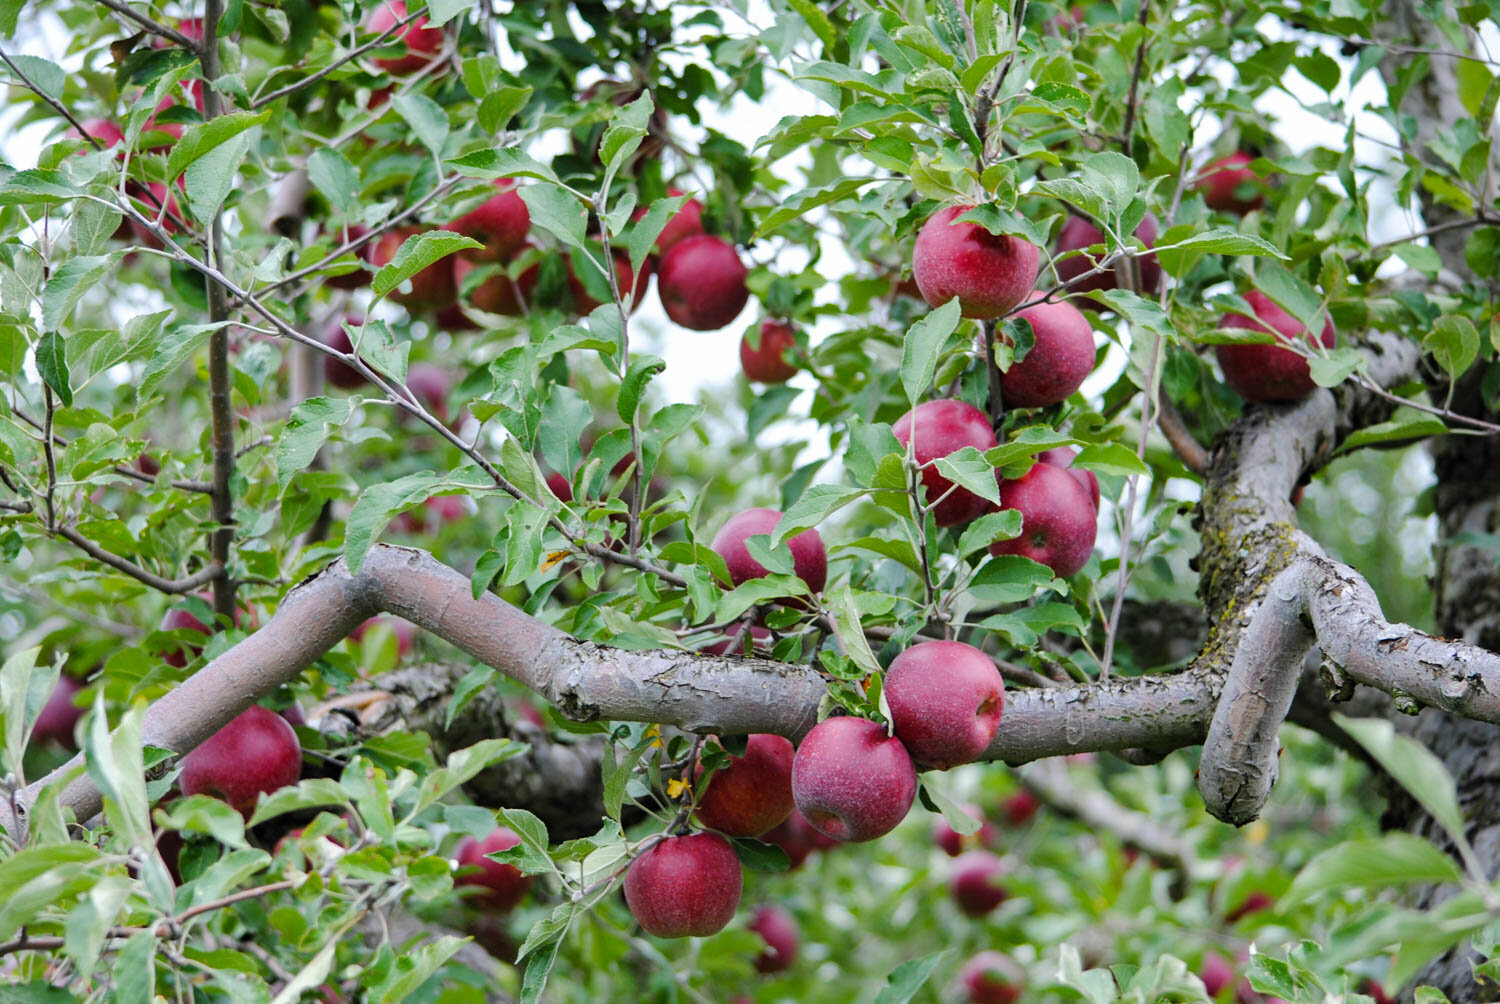 The crooked branches of 'Jonathan' apples